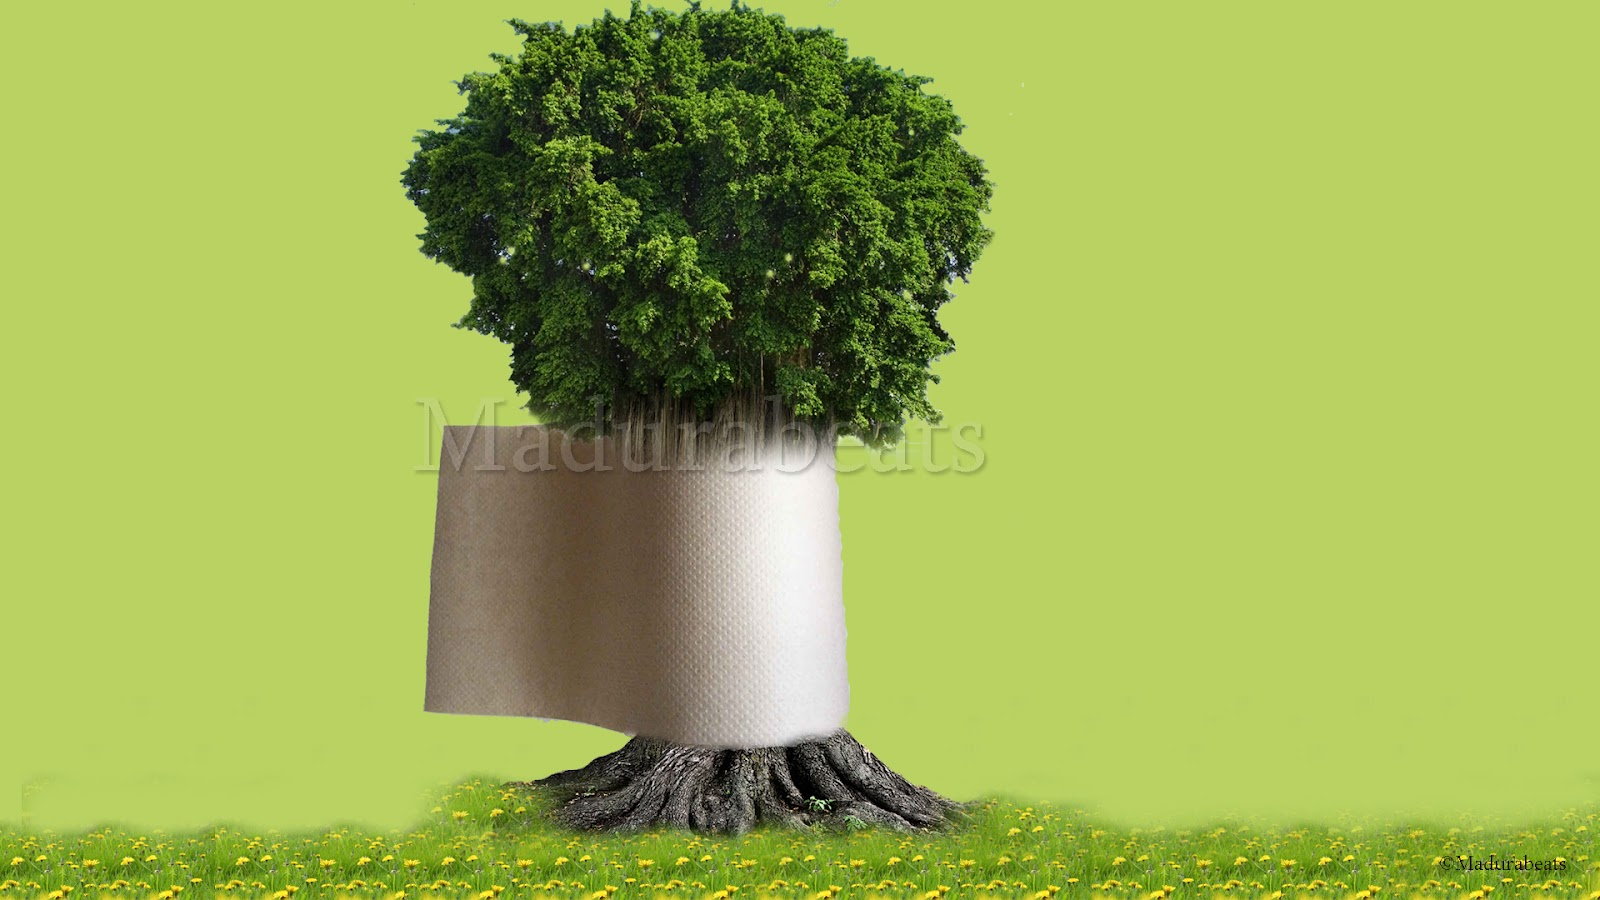 Paper roll tree - Paper roll in tree trunk with green background